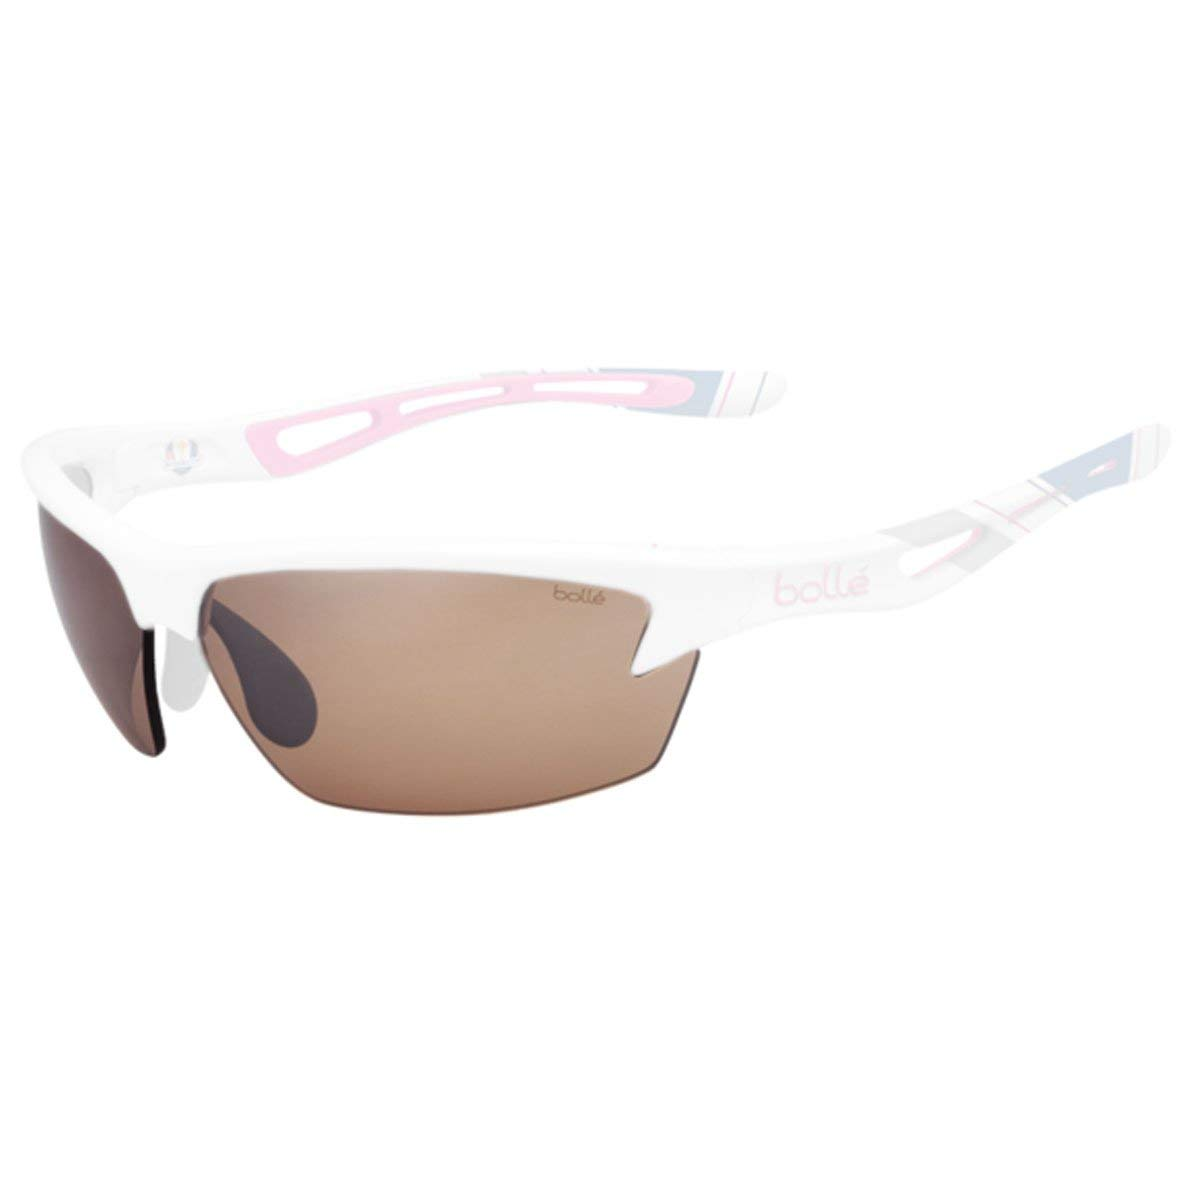 b24159ed2b Get Quotations · Bolle Bolt Sunglass Replacement Lenses